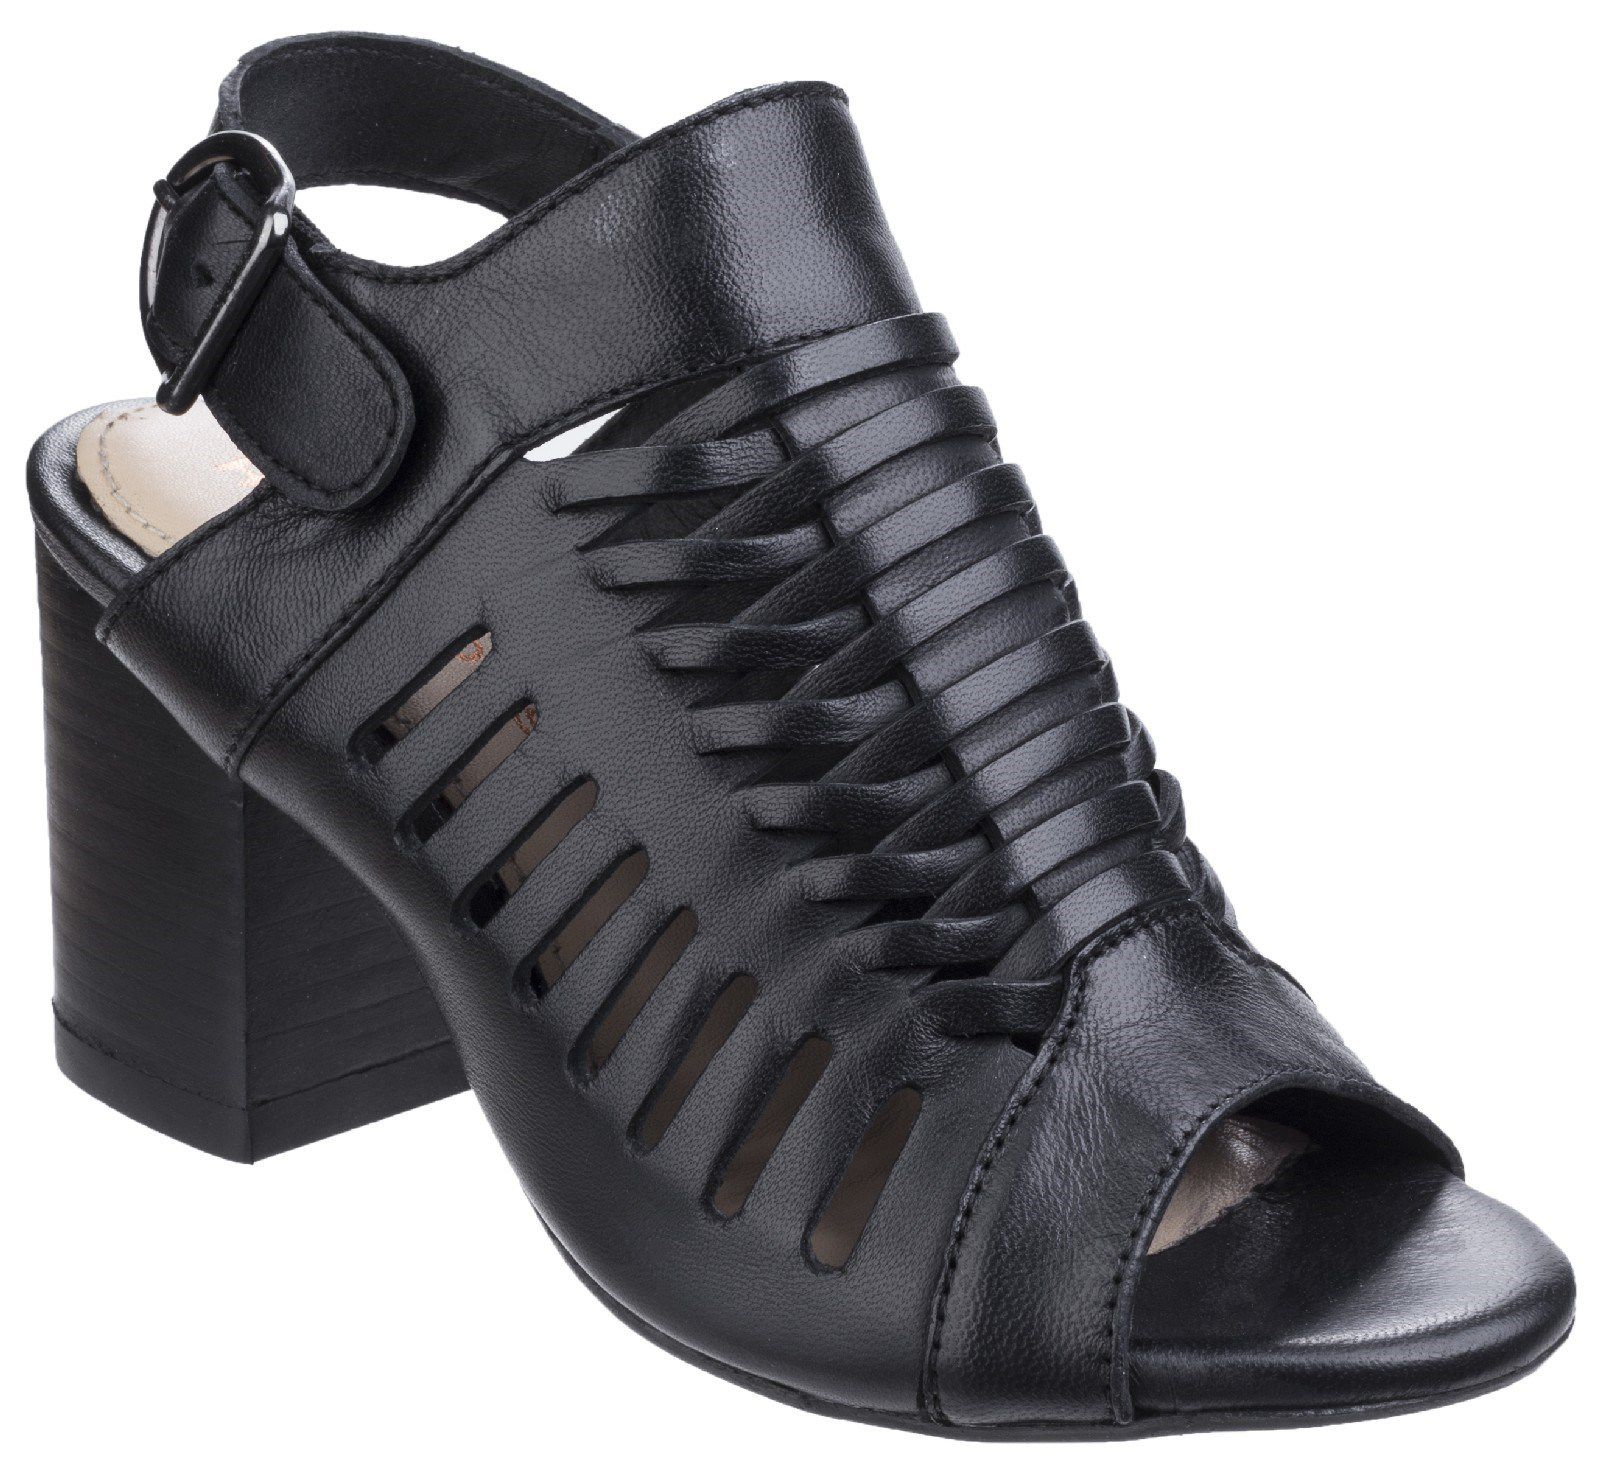 Hush Puppies Sidra malia heeled sandals Black